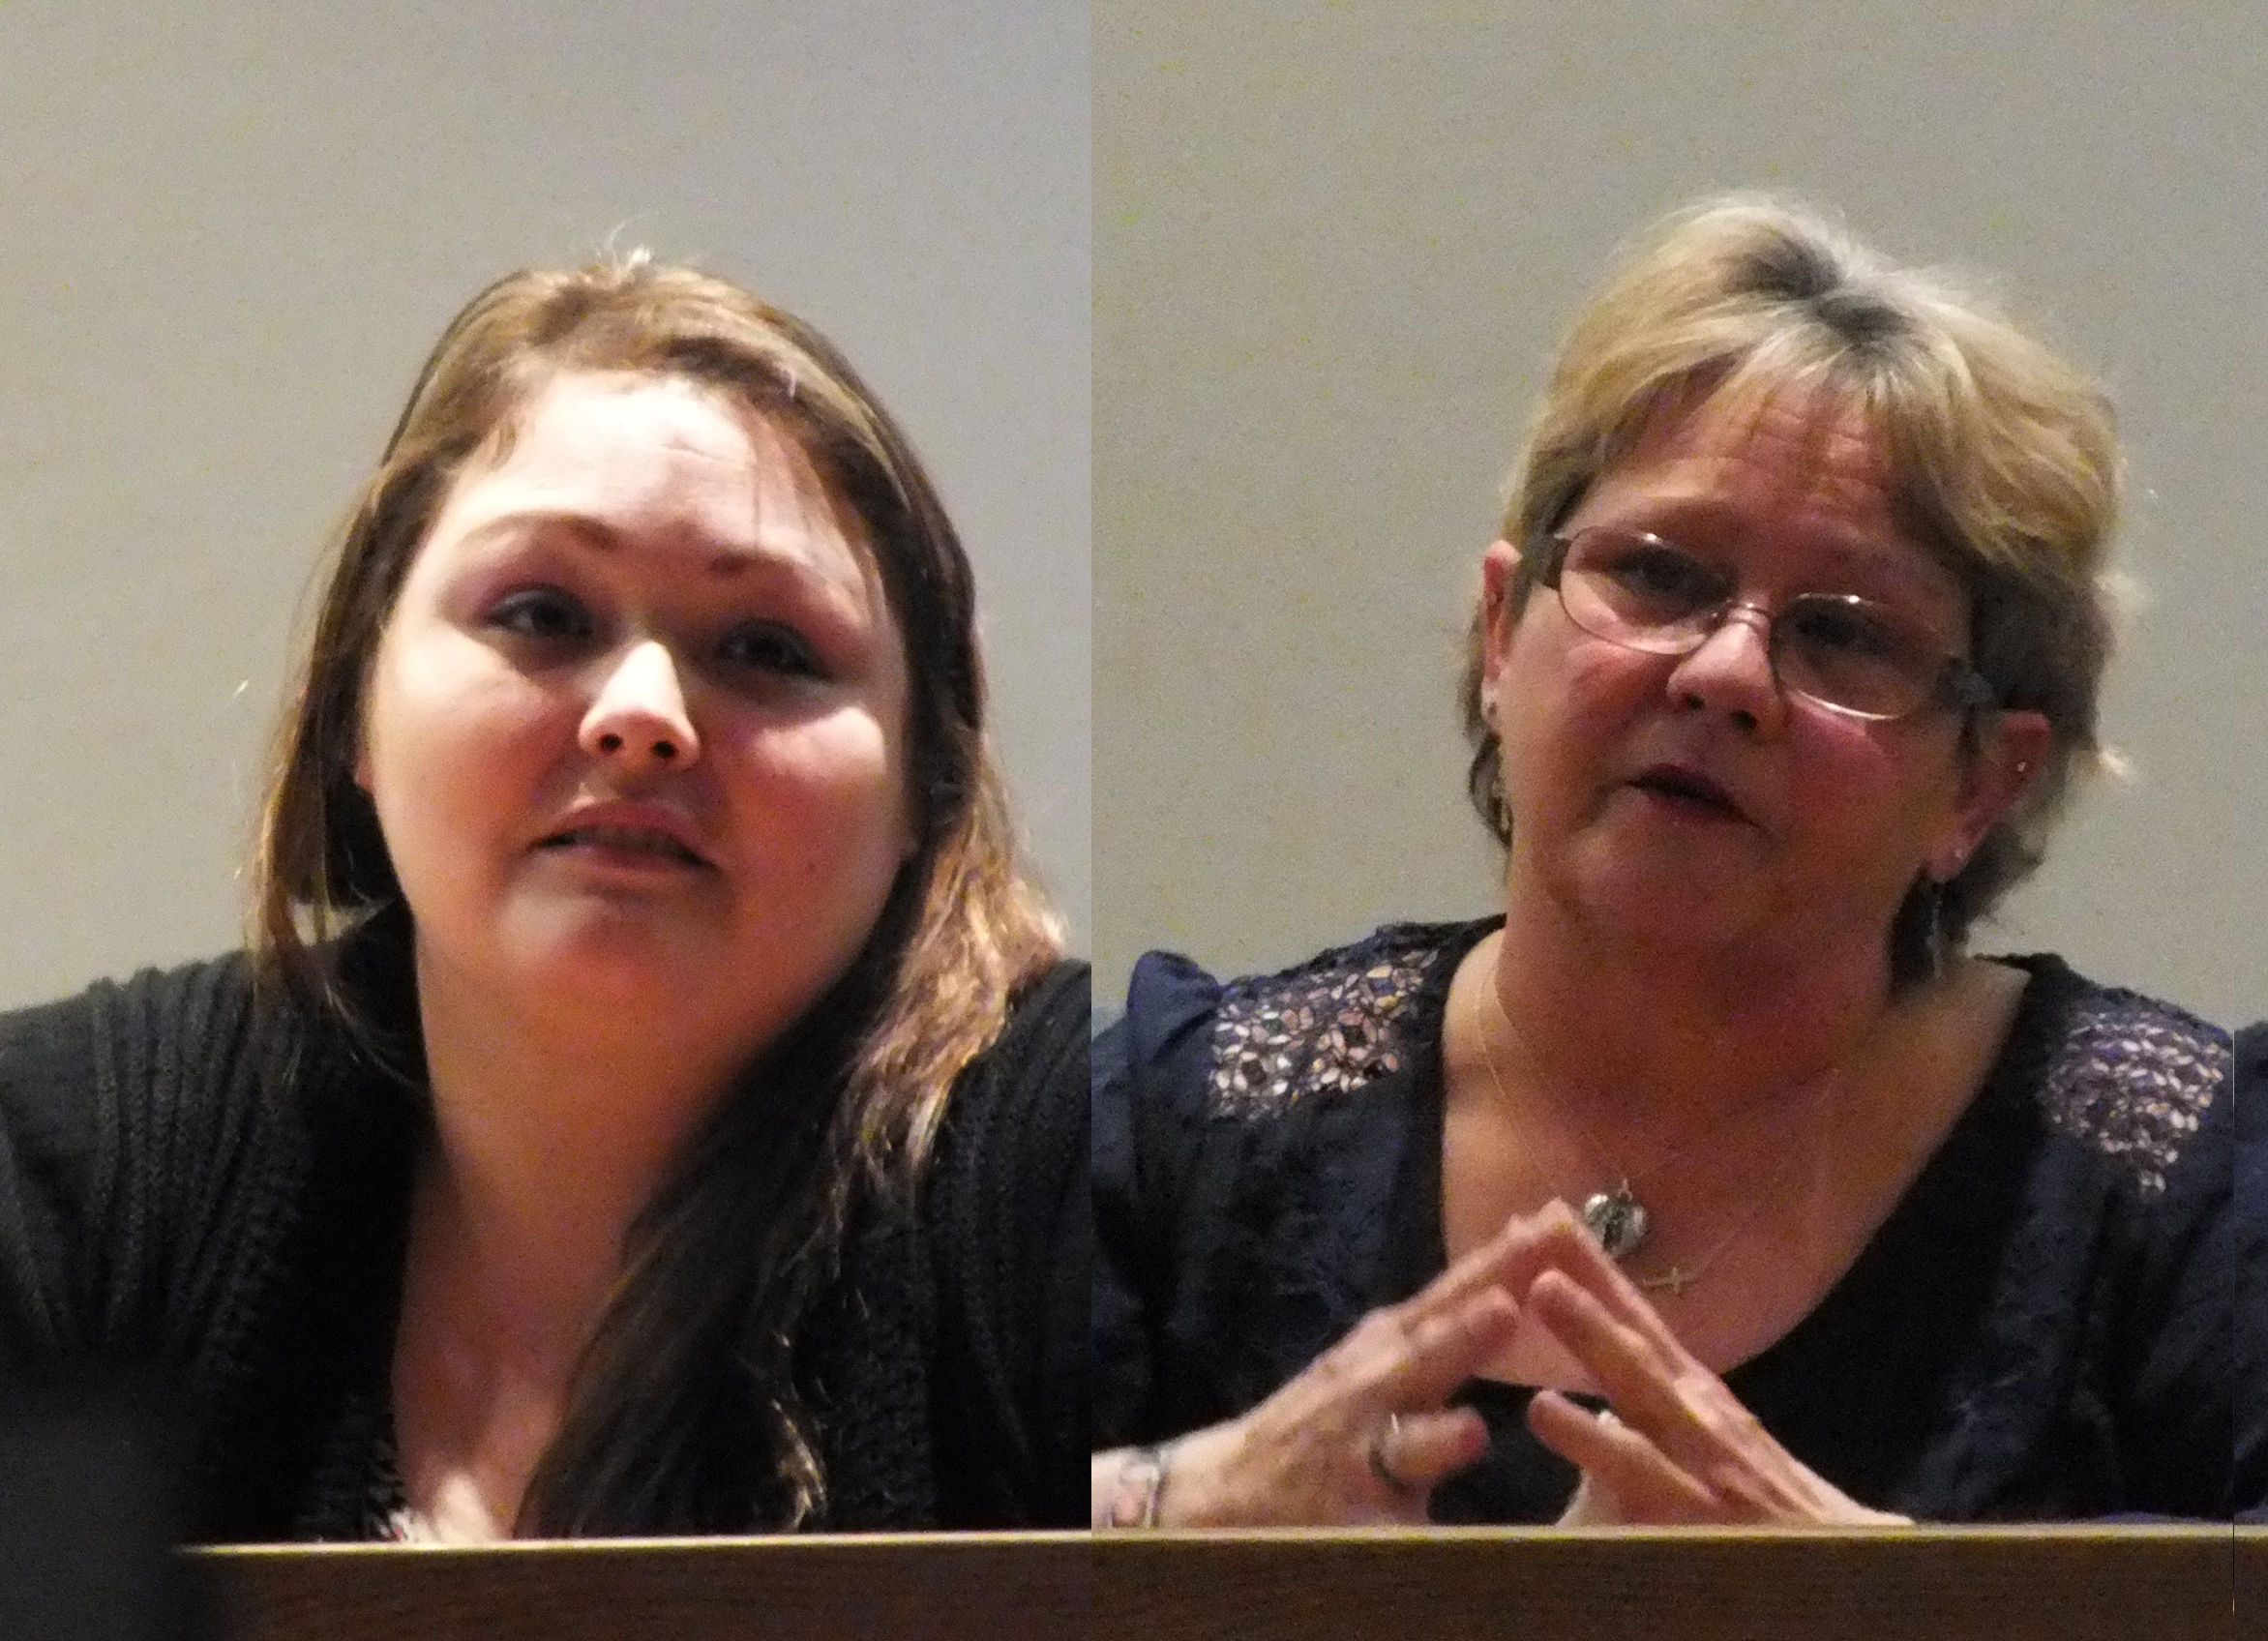 Haley Tokuoka-Yearout and Debbie Green testify during the civil trial in April 2015. (Photos by Matt Miller/KTOO)